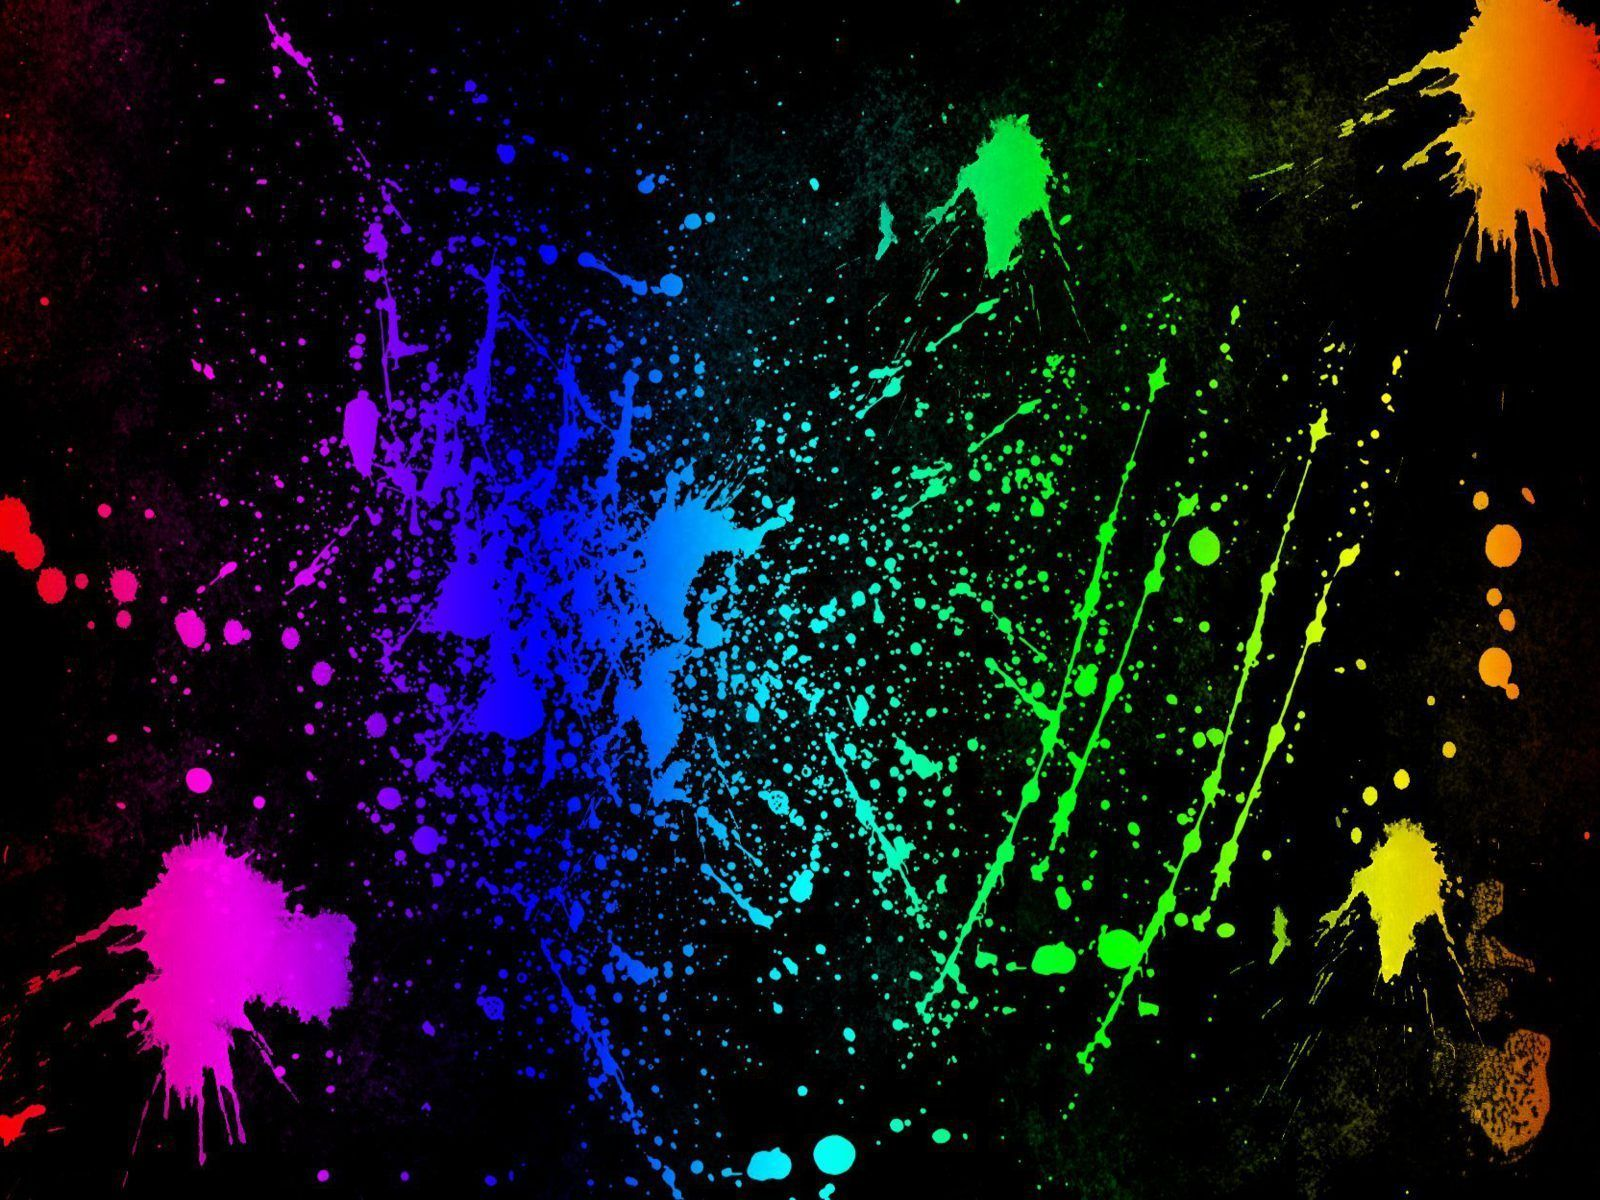 Splatter - Neon Colors Rock Wallpaper (18995953) - Fanpop fanclubs ...